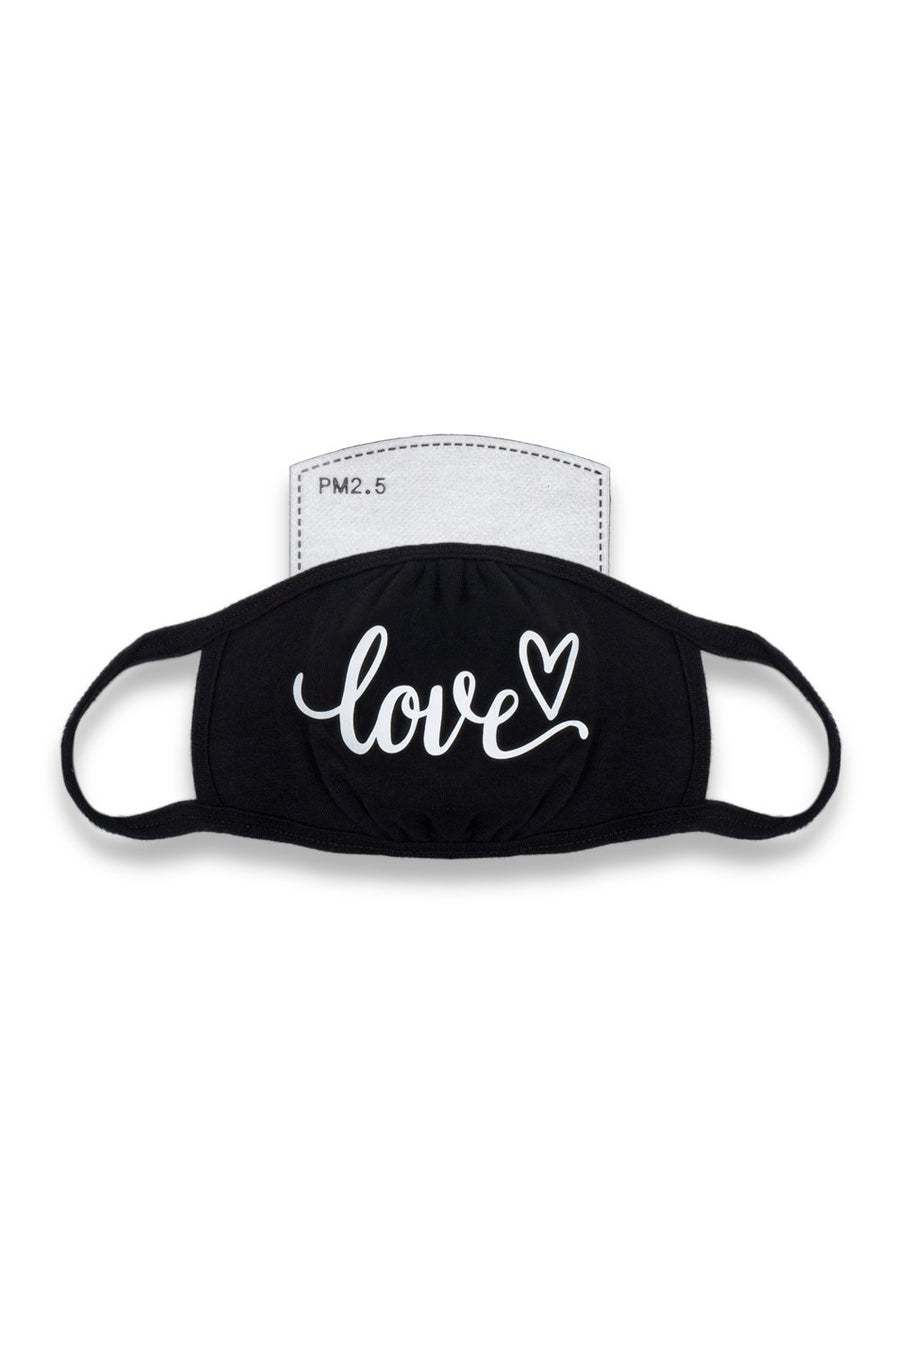 Love Cursive Mask Black/White